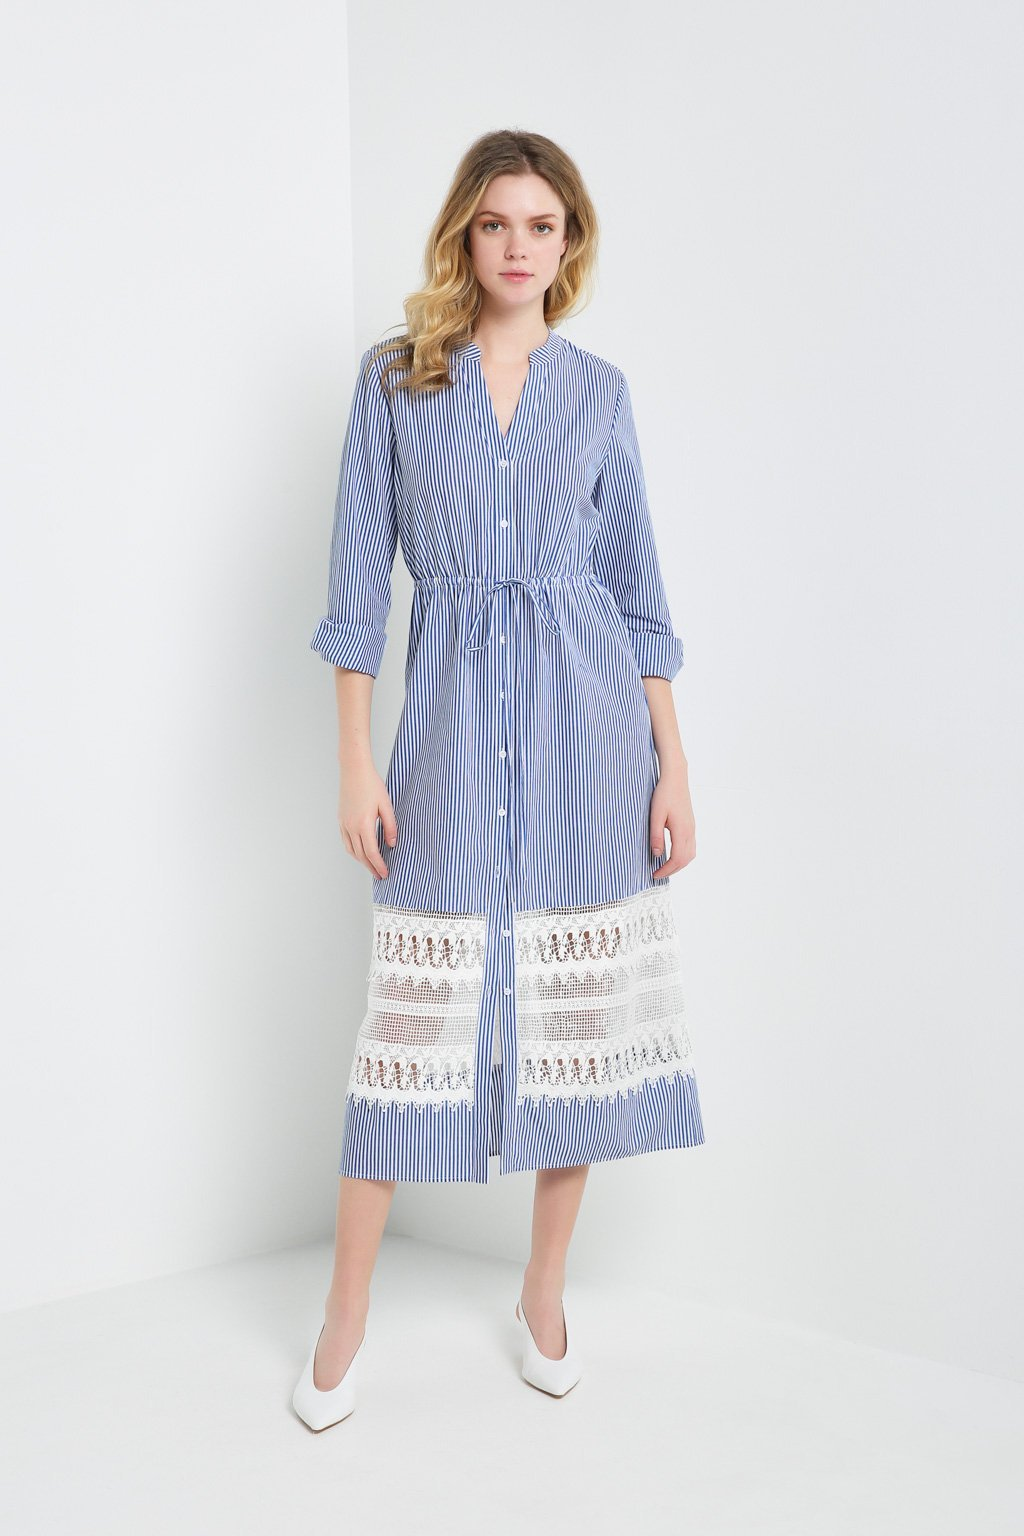 Poshsquare Dress S / Blue Pinstripes Lace Panel Shirt Dress